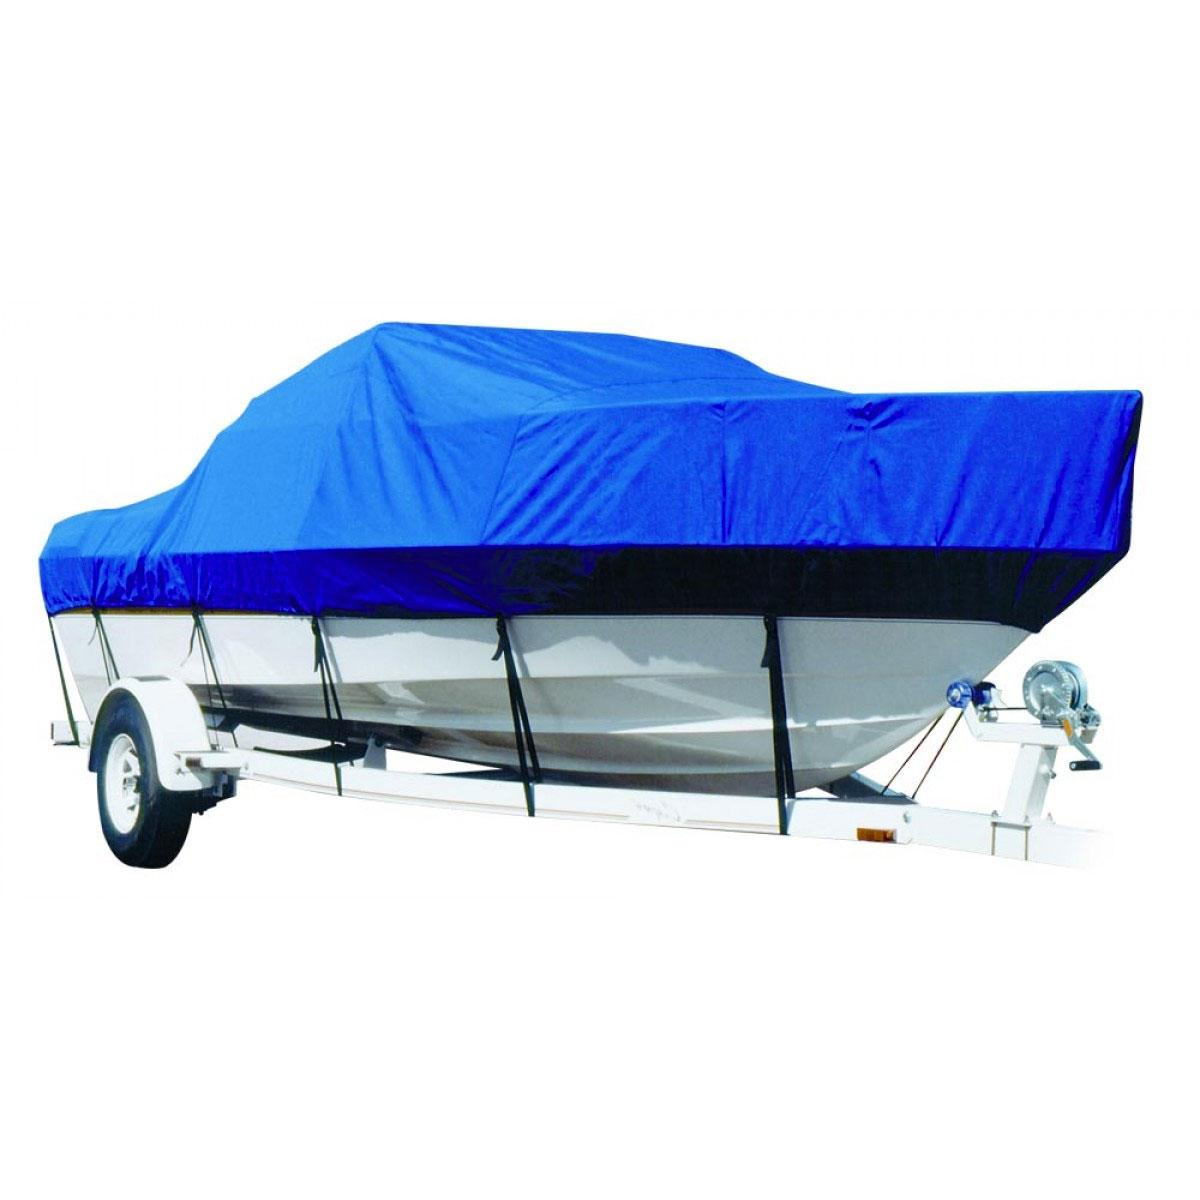 TOWABLE BOAT COVER FOR Lund REBEL 16 DLX//SS//TILLER 1994-2005